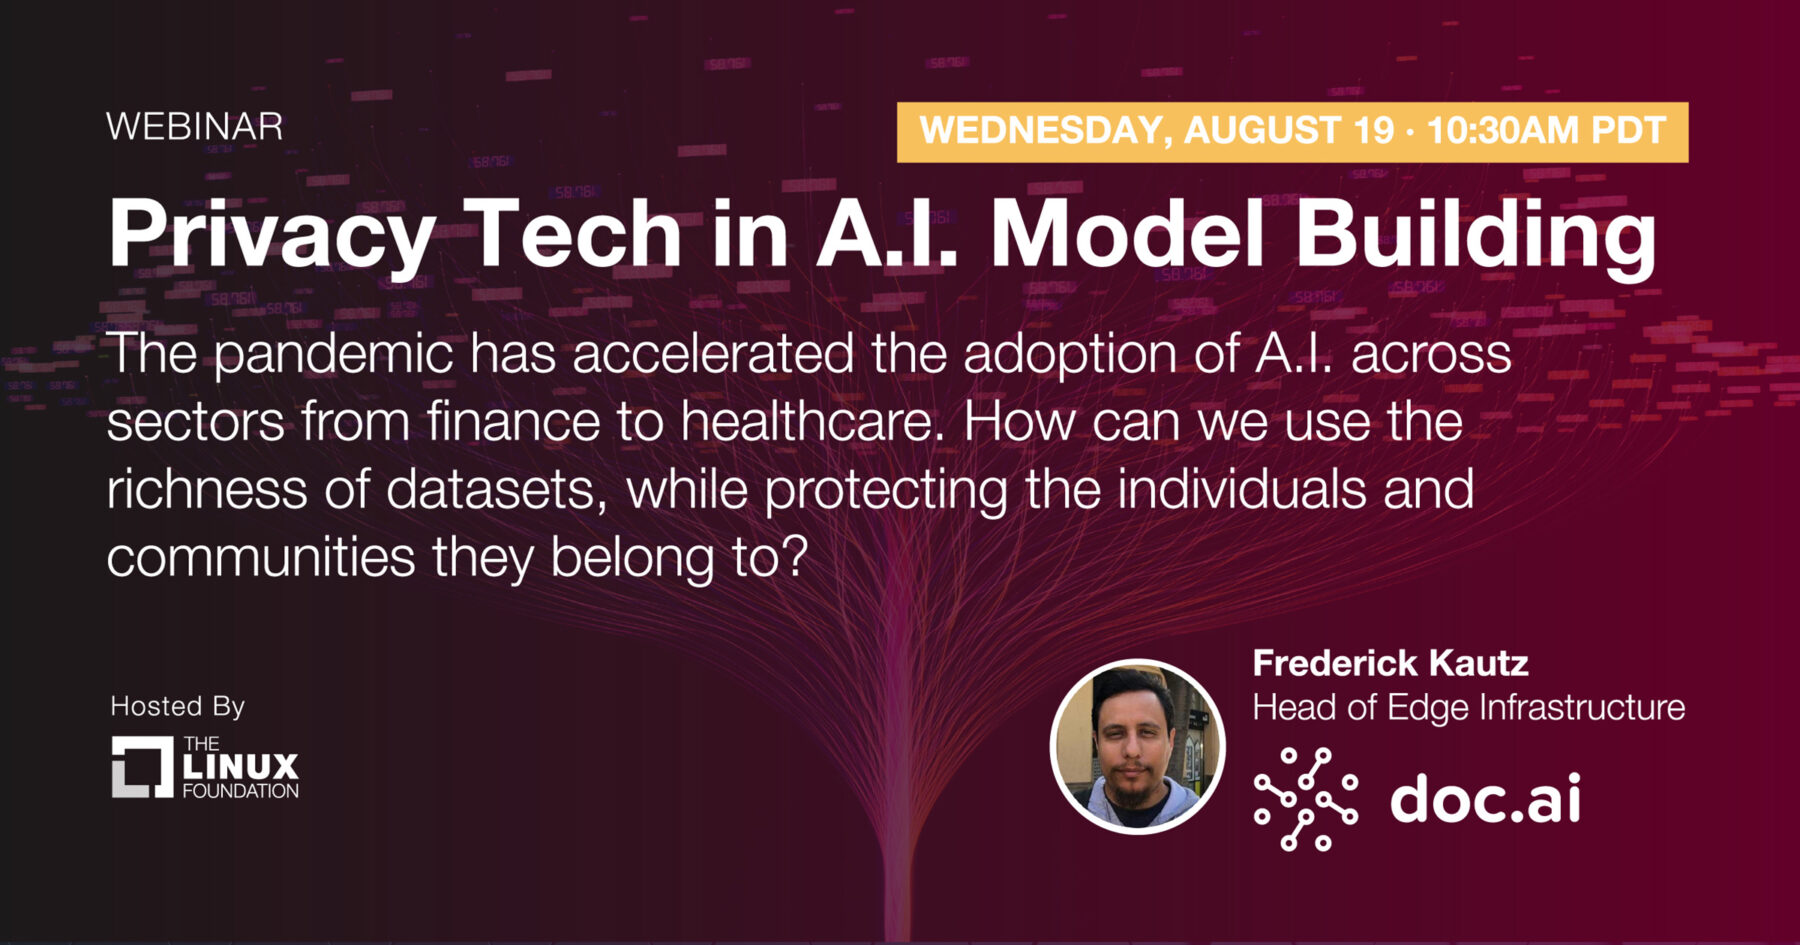 Webinar - Privacy Tech in A.I. Model Building